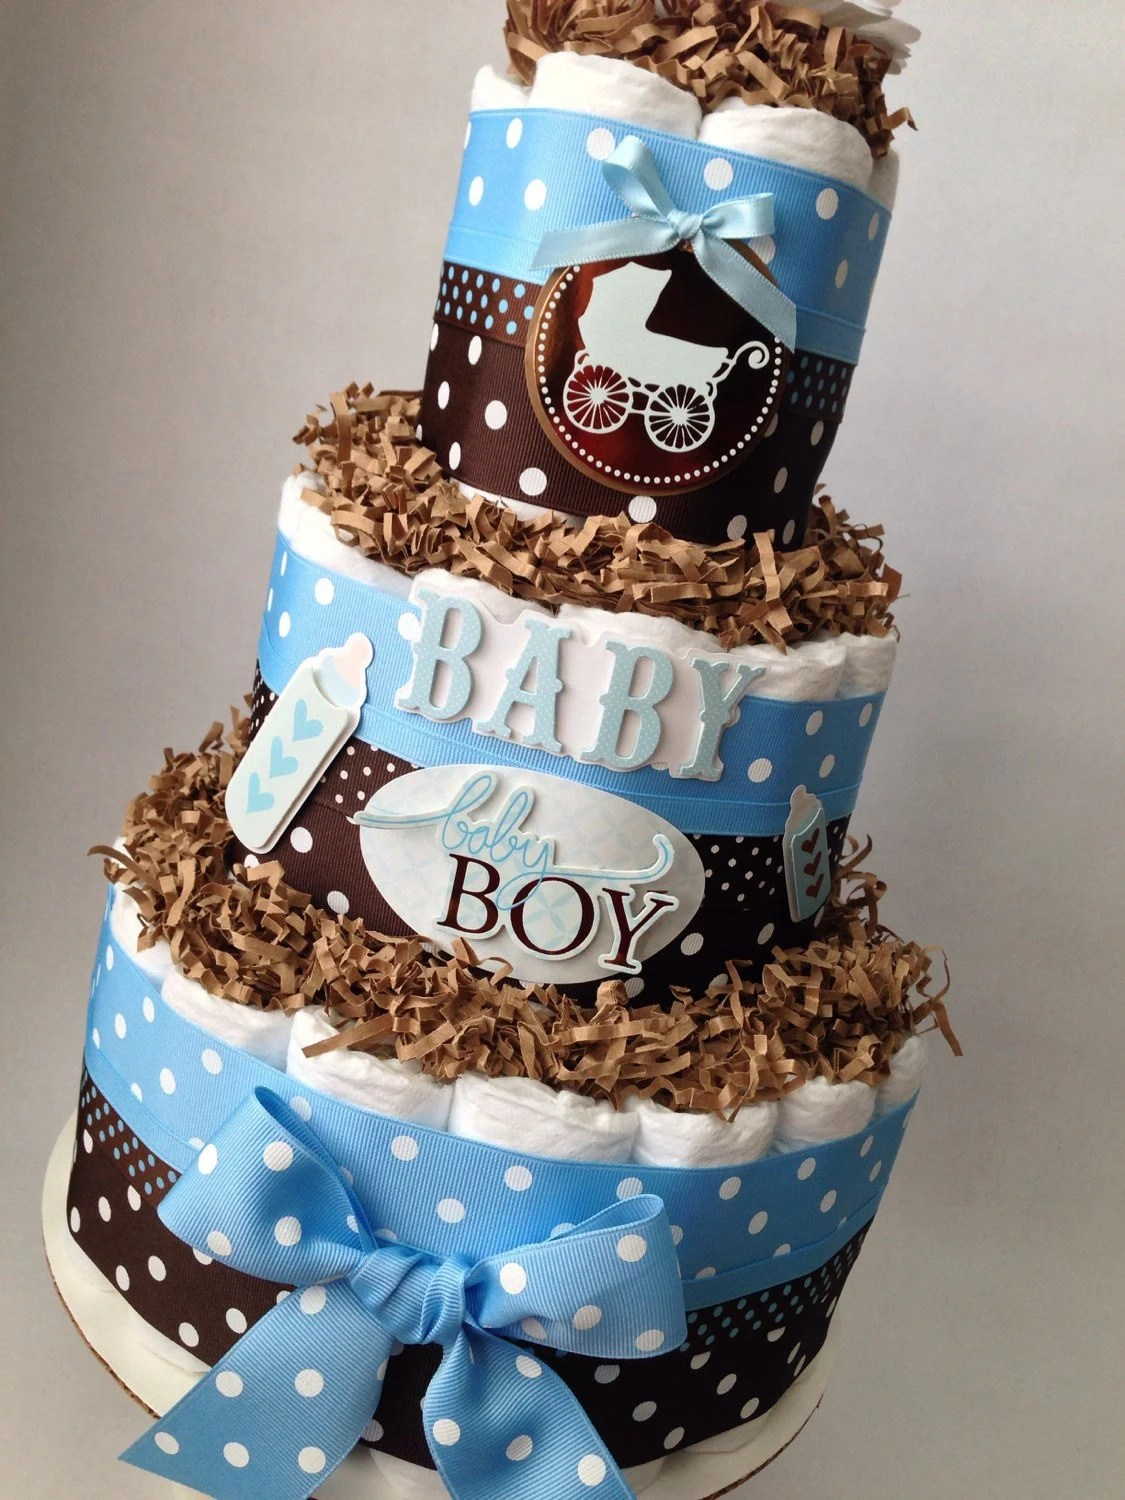 Blue And Brown Boy Diaper Cake For Baby Shower Decoration Or